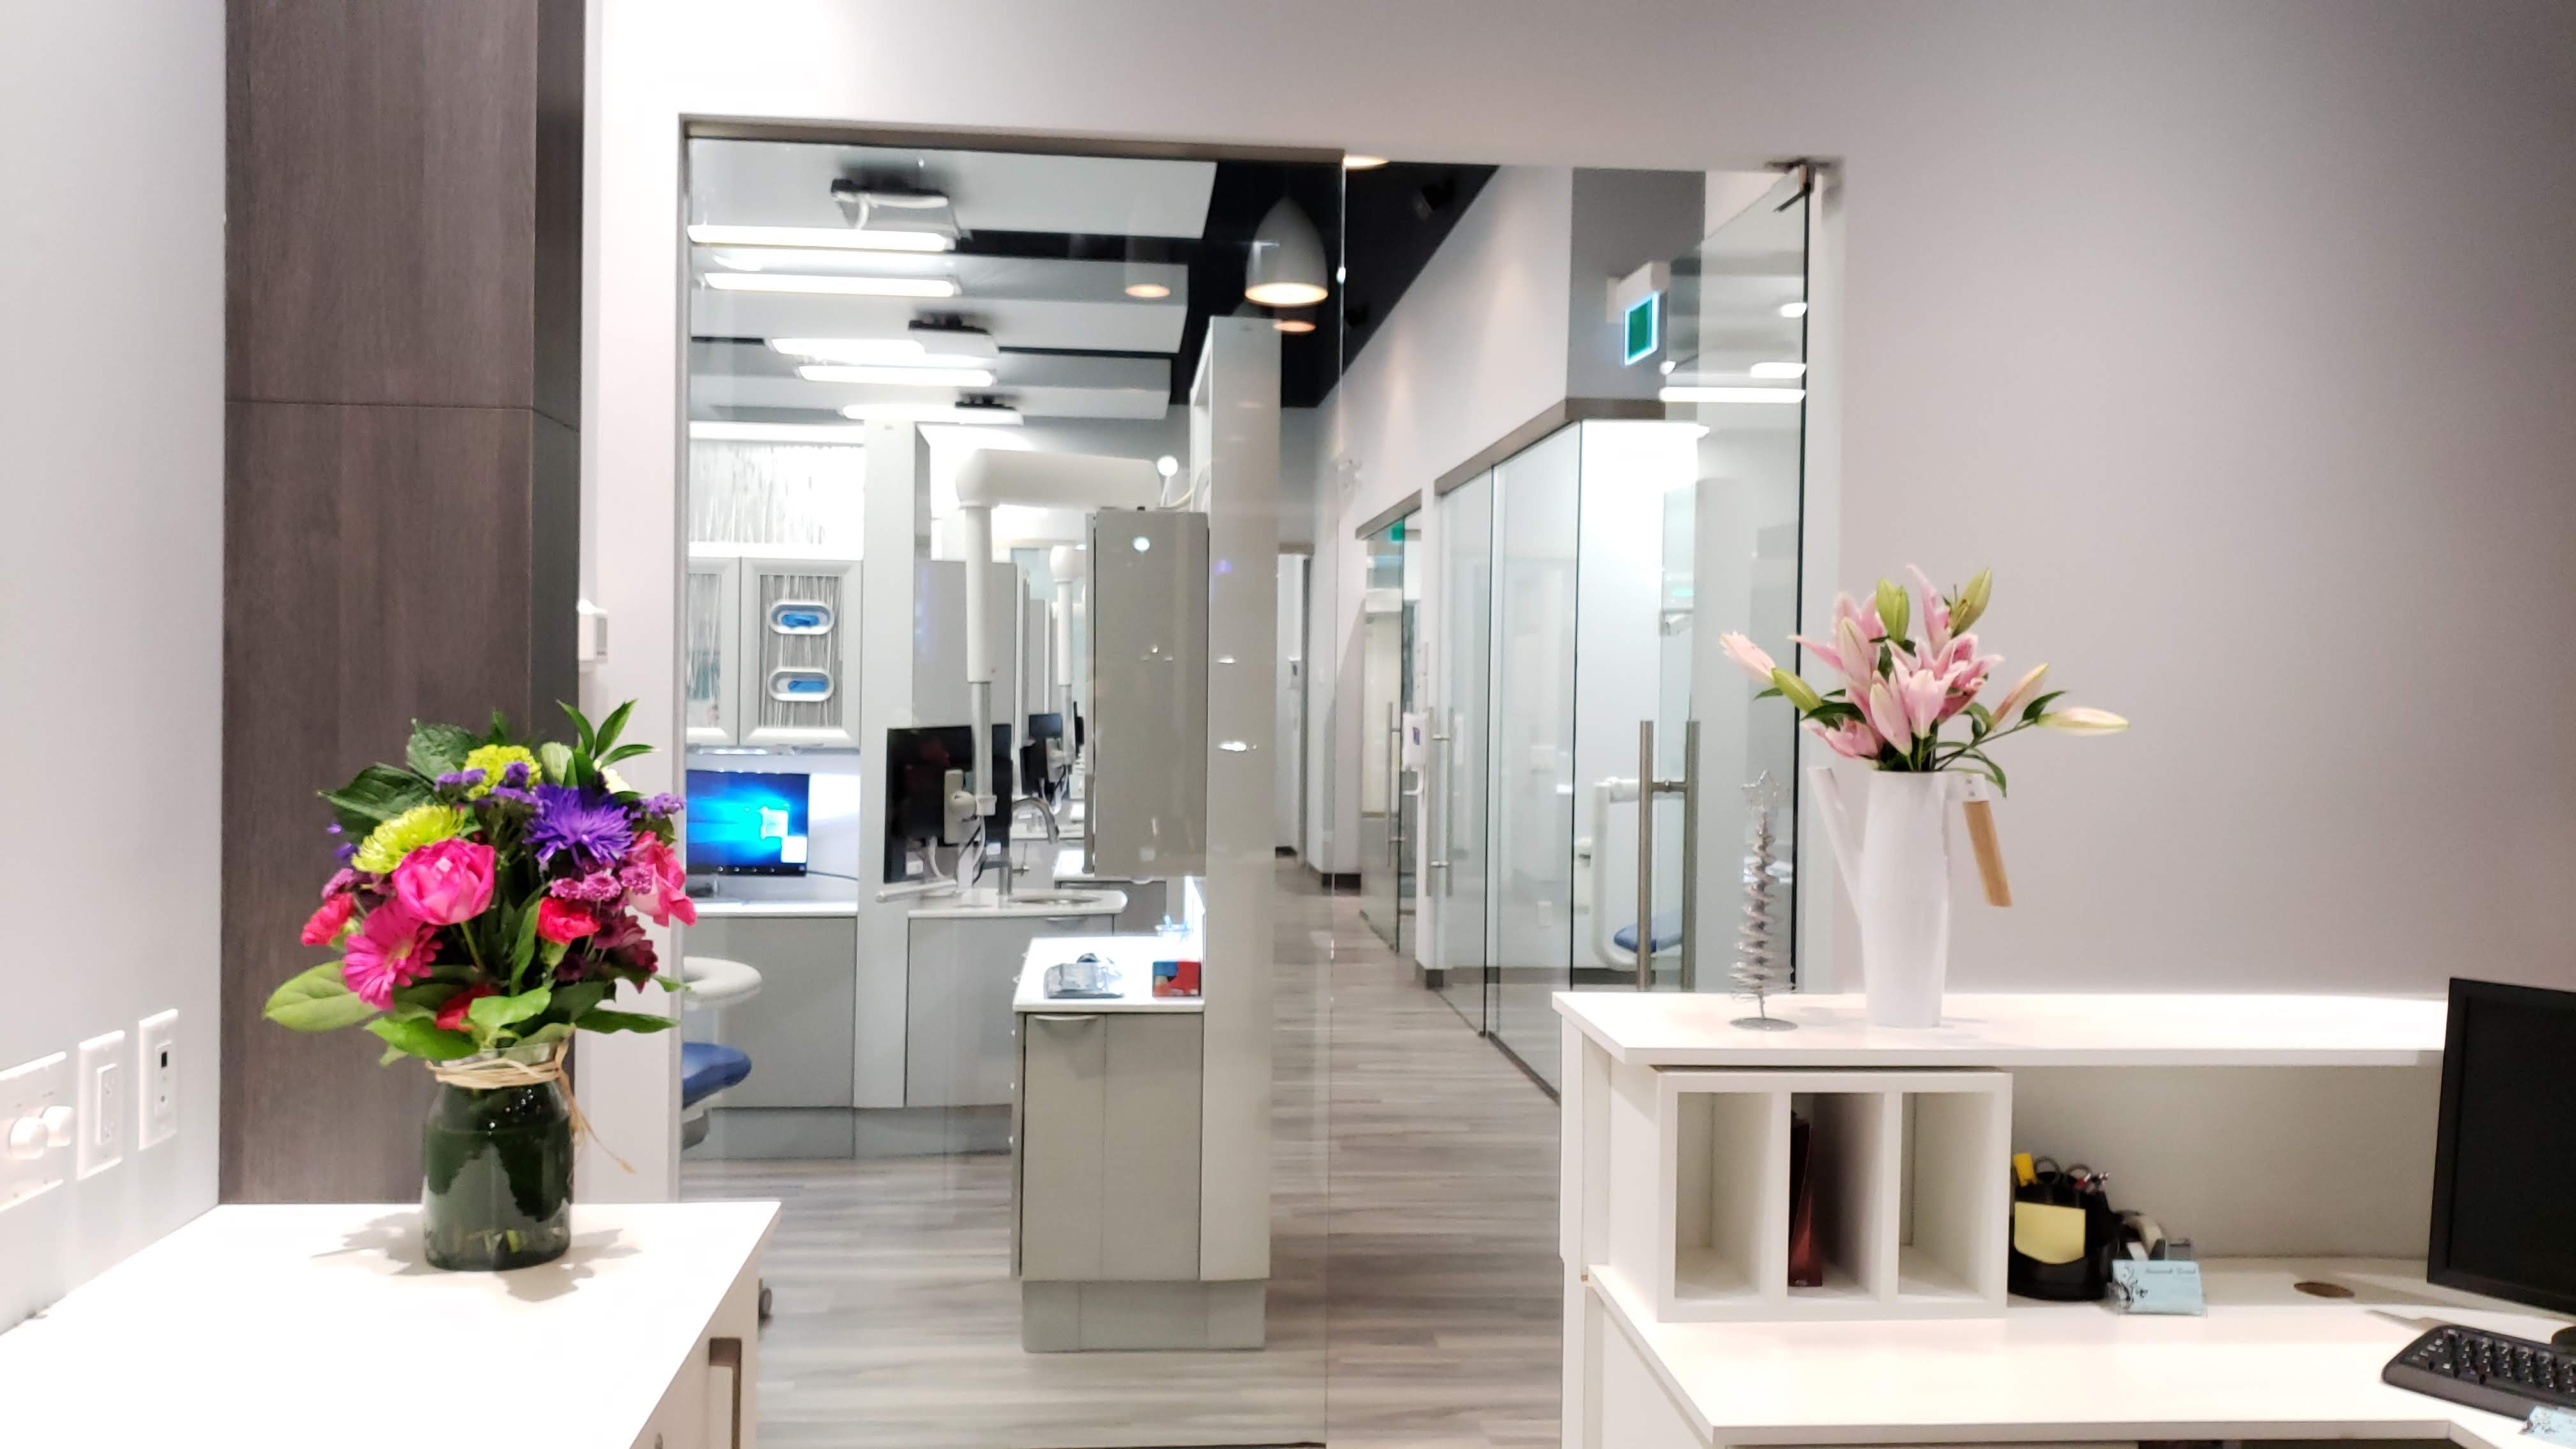 Savannah Dental Clinic Interior located at South Edmonton Common